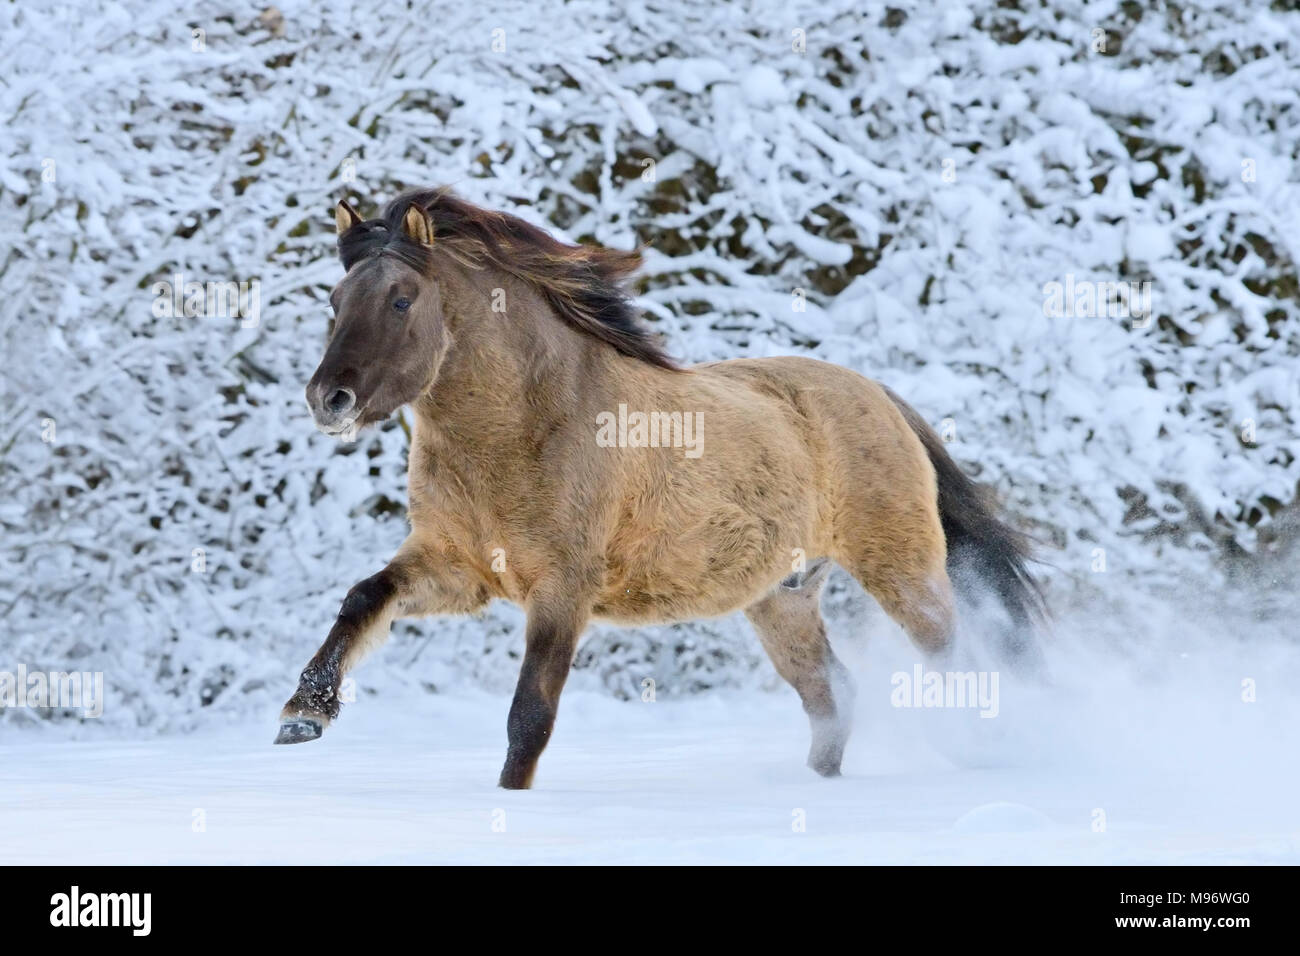 Konik pony cantering in snow - Stock Image